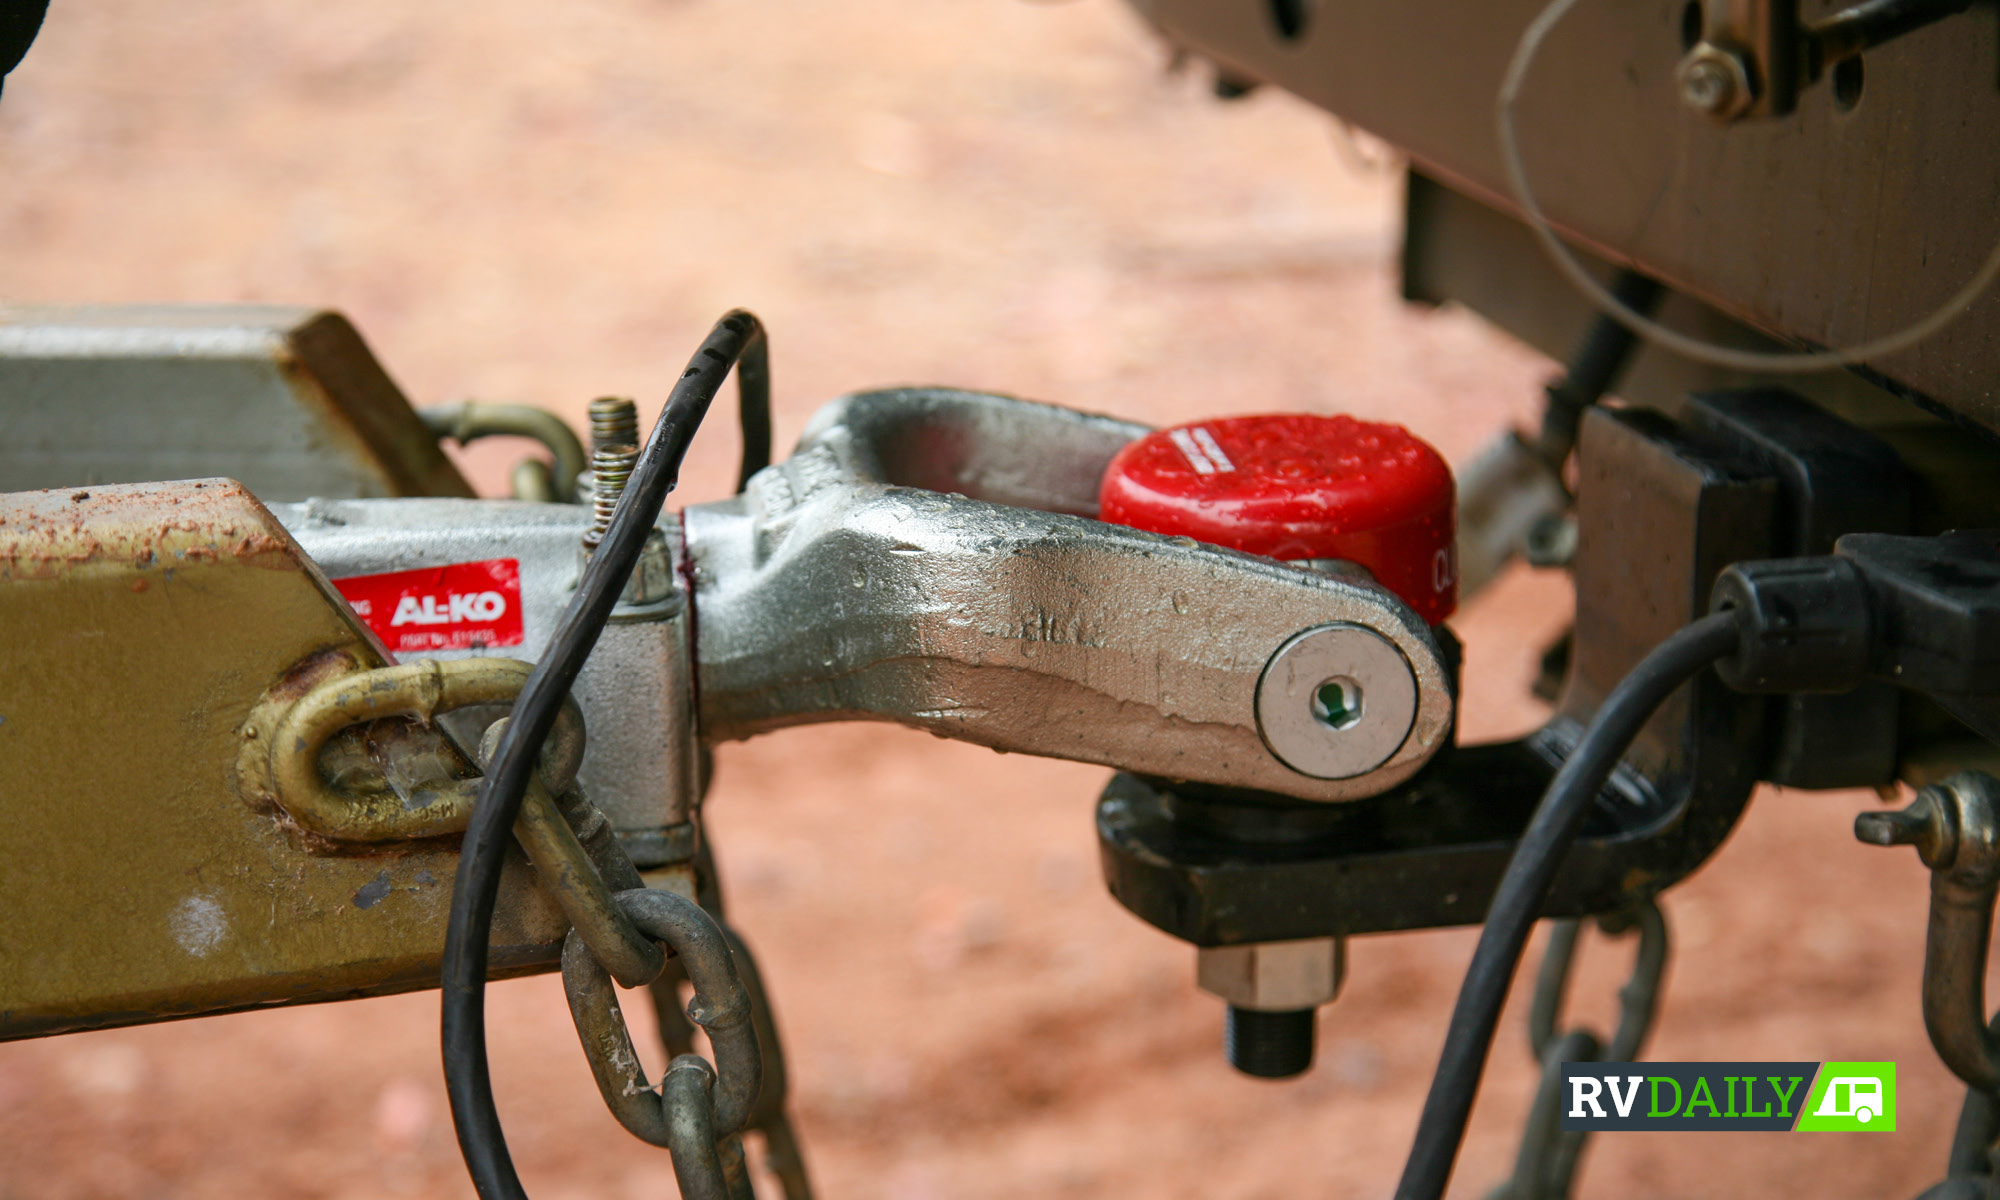 AL-KO: We have changed the off-road hitch game